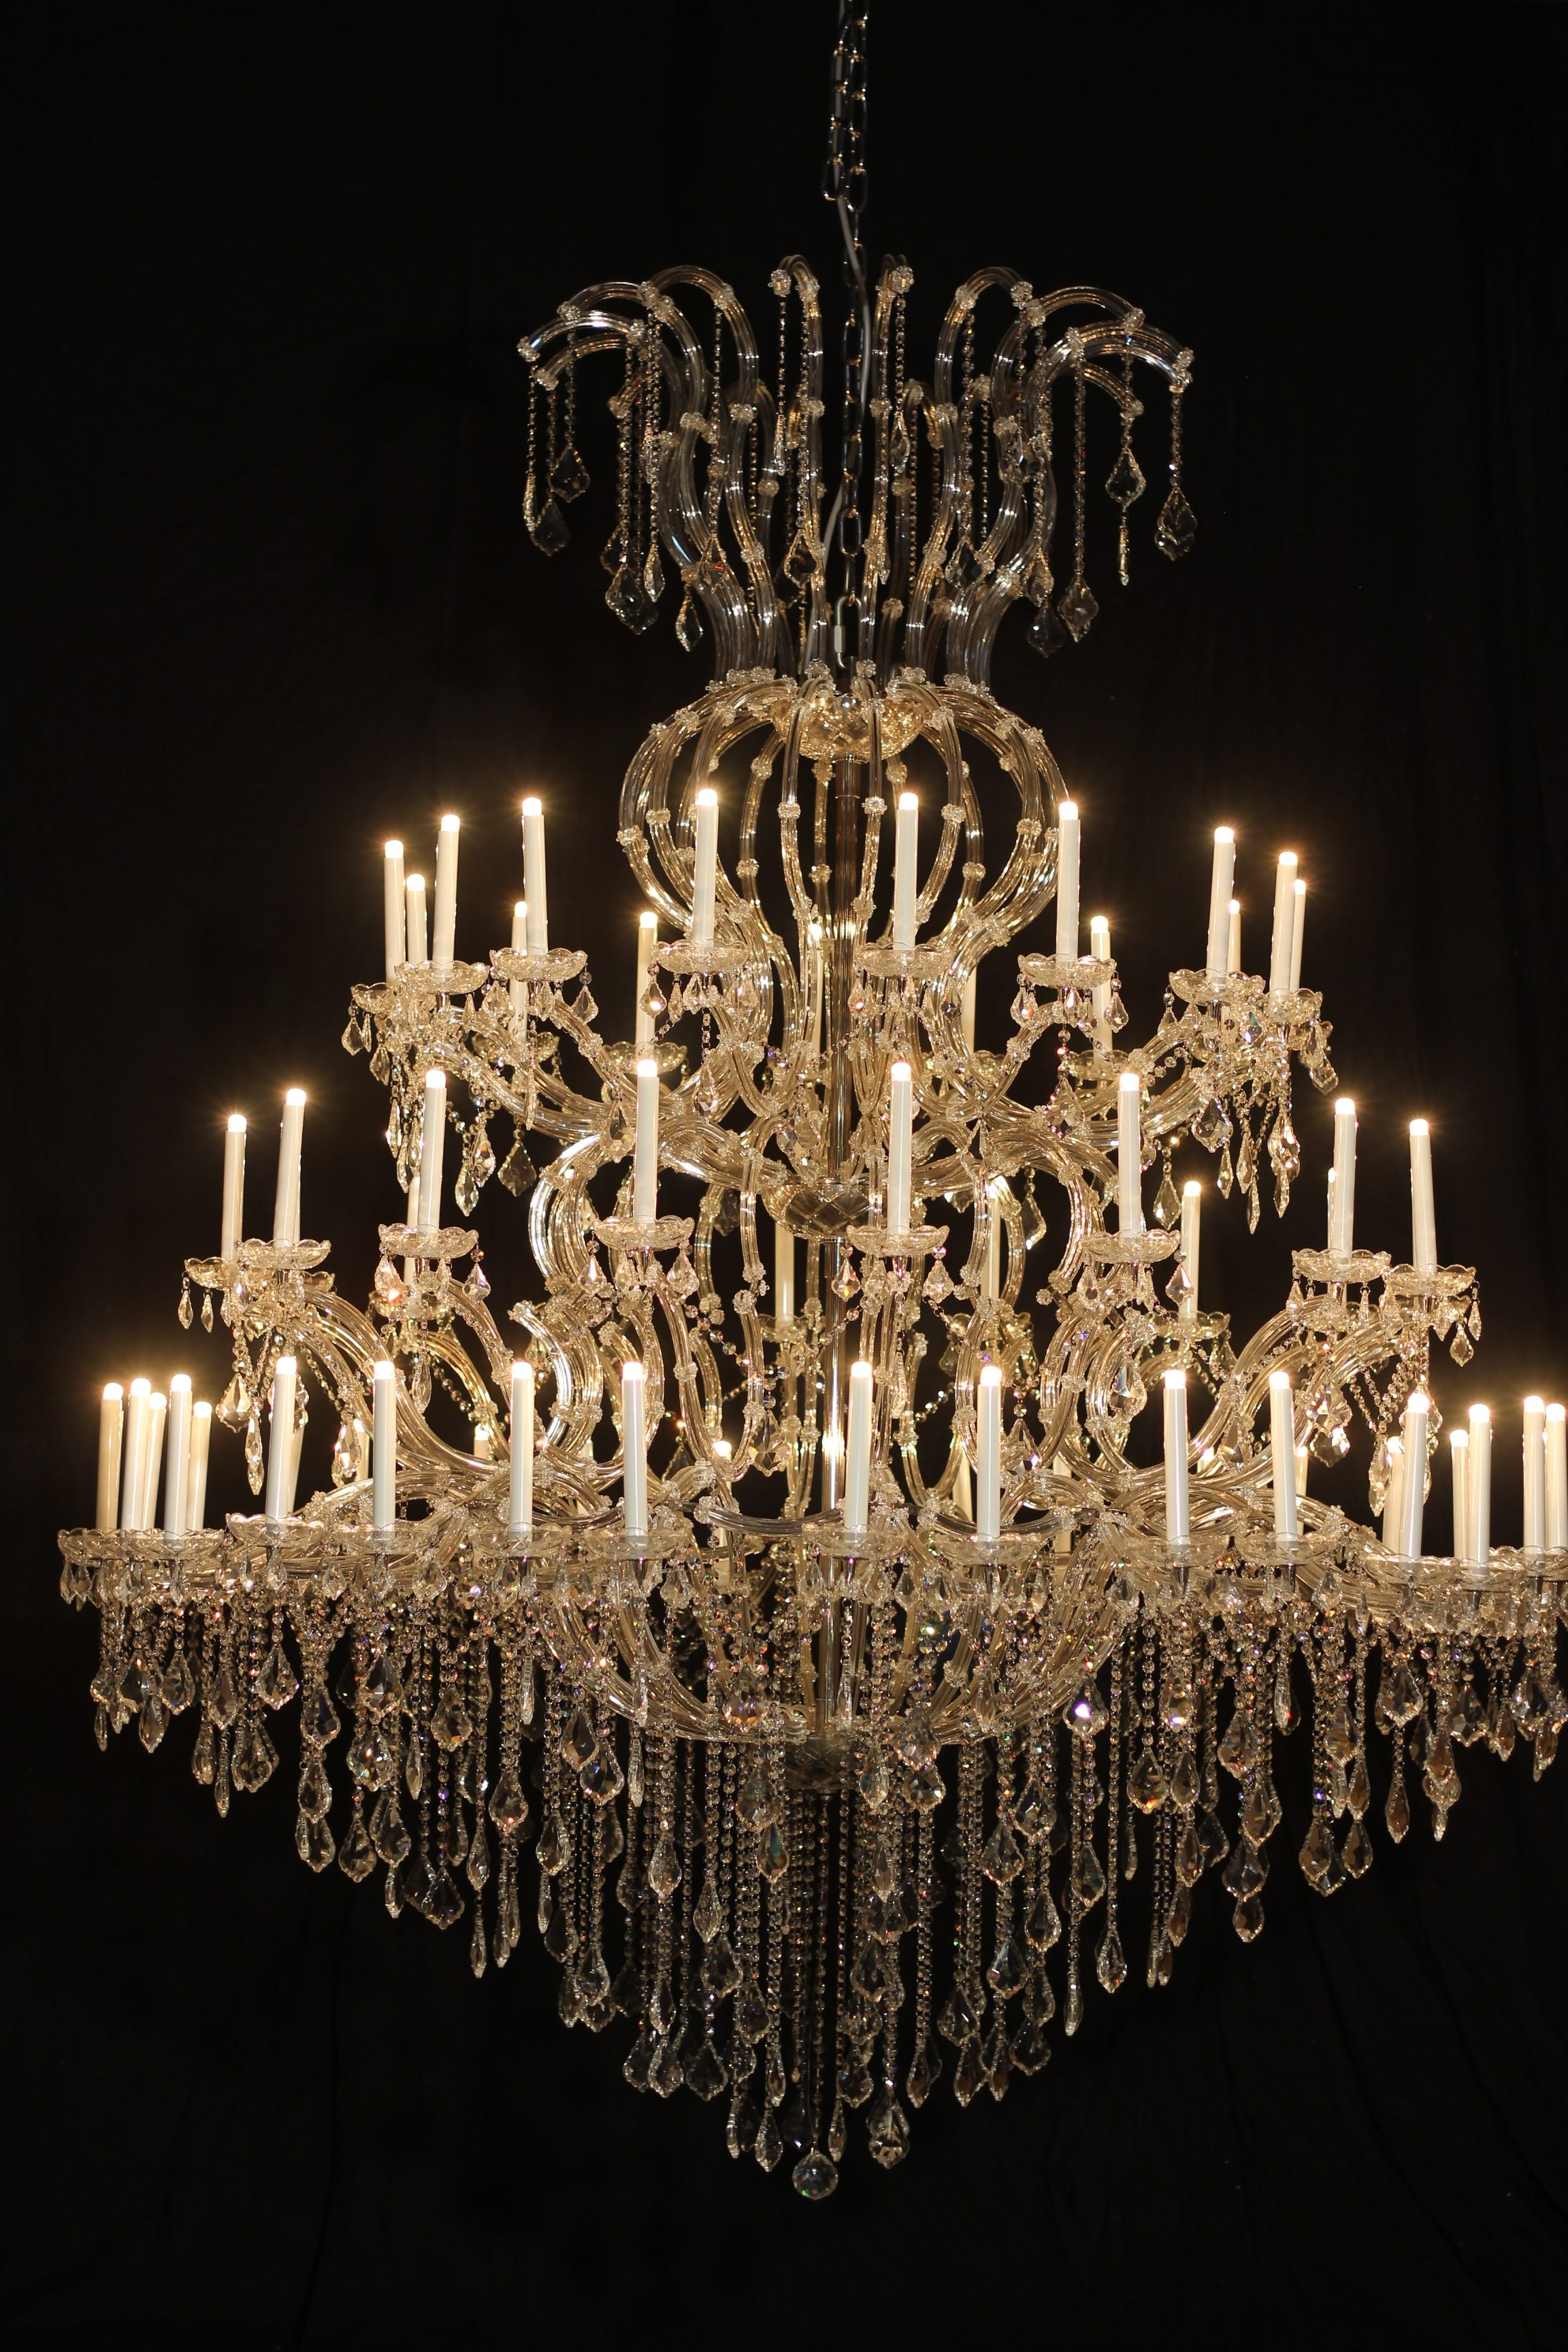 Rentalamp the chandelier rental pany Chandeliers for rent